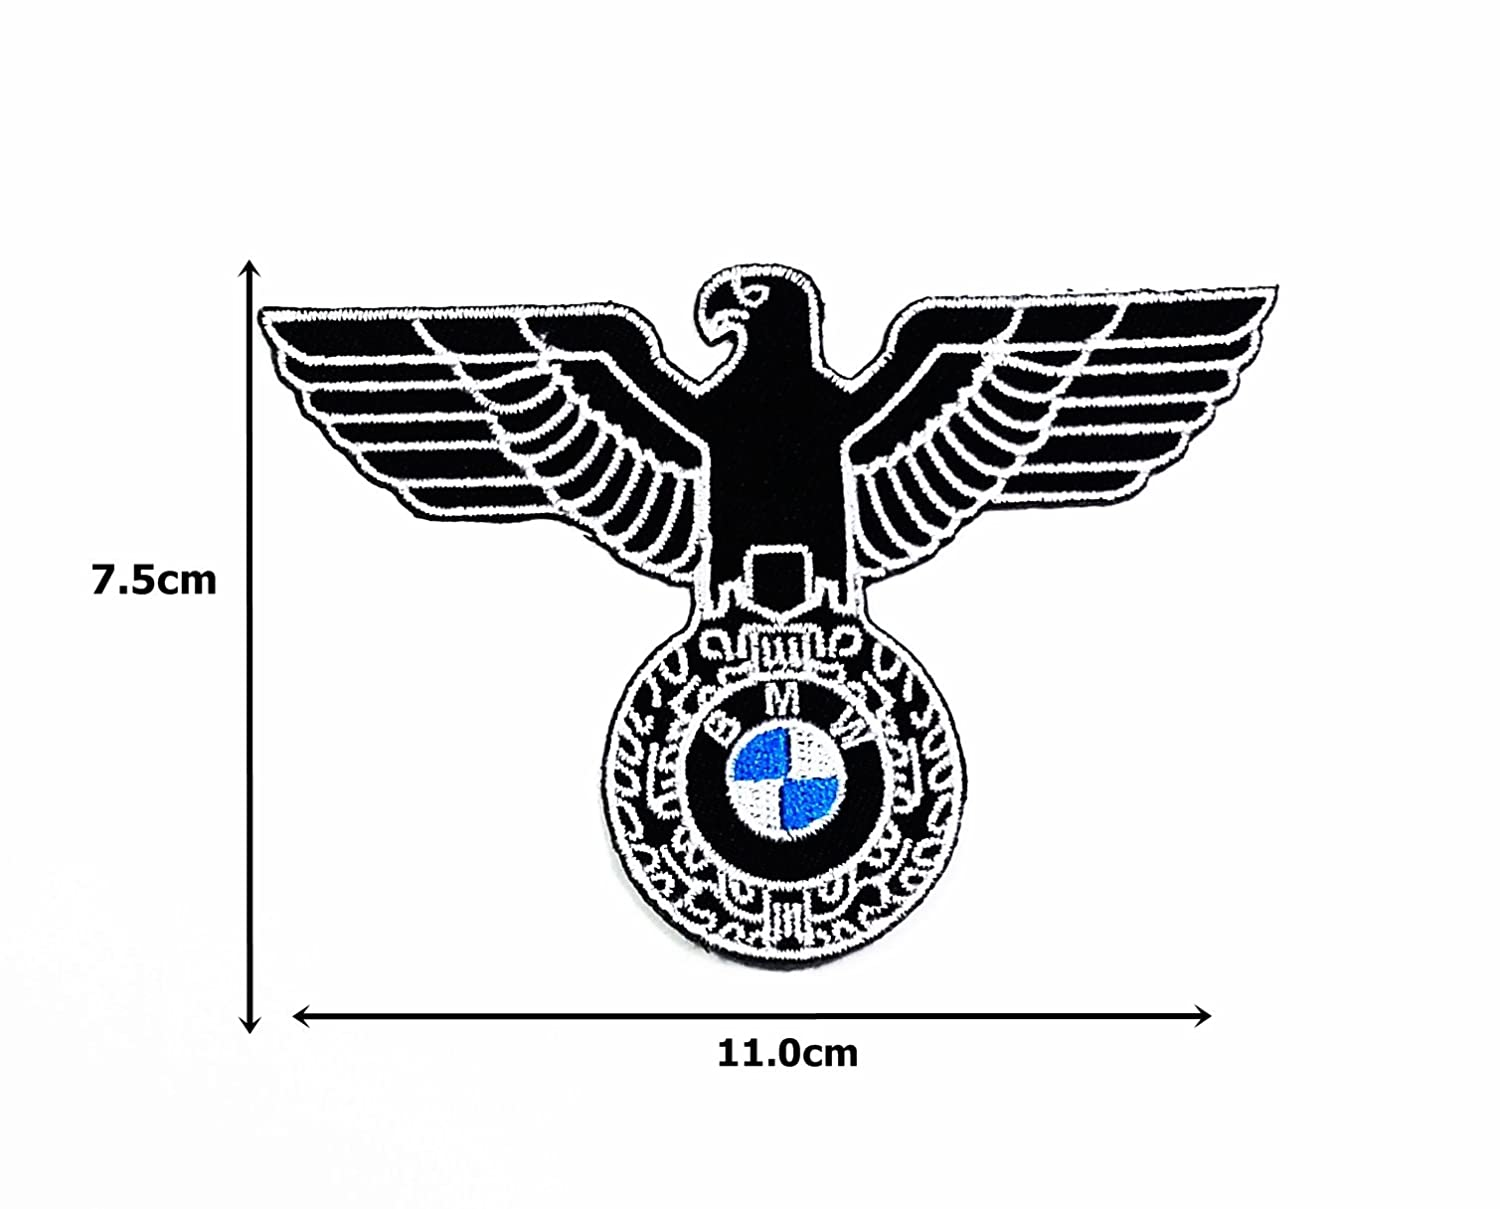 Amazon bmw german bundesadler eagle coat of arms world war ww amazon bmw german bundesadler eagle coat of arms world war ww ii gsa toppa mottorrad motorcycles jacket polo shirt t shirt patch for collection with buycottarizona Gallery